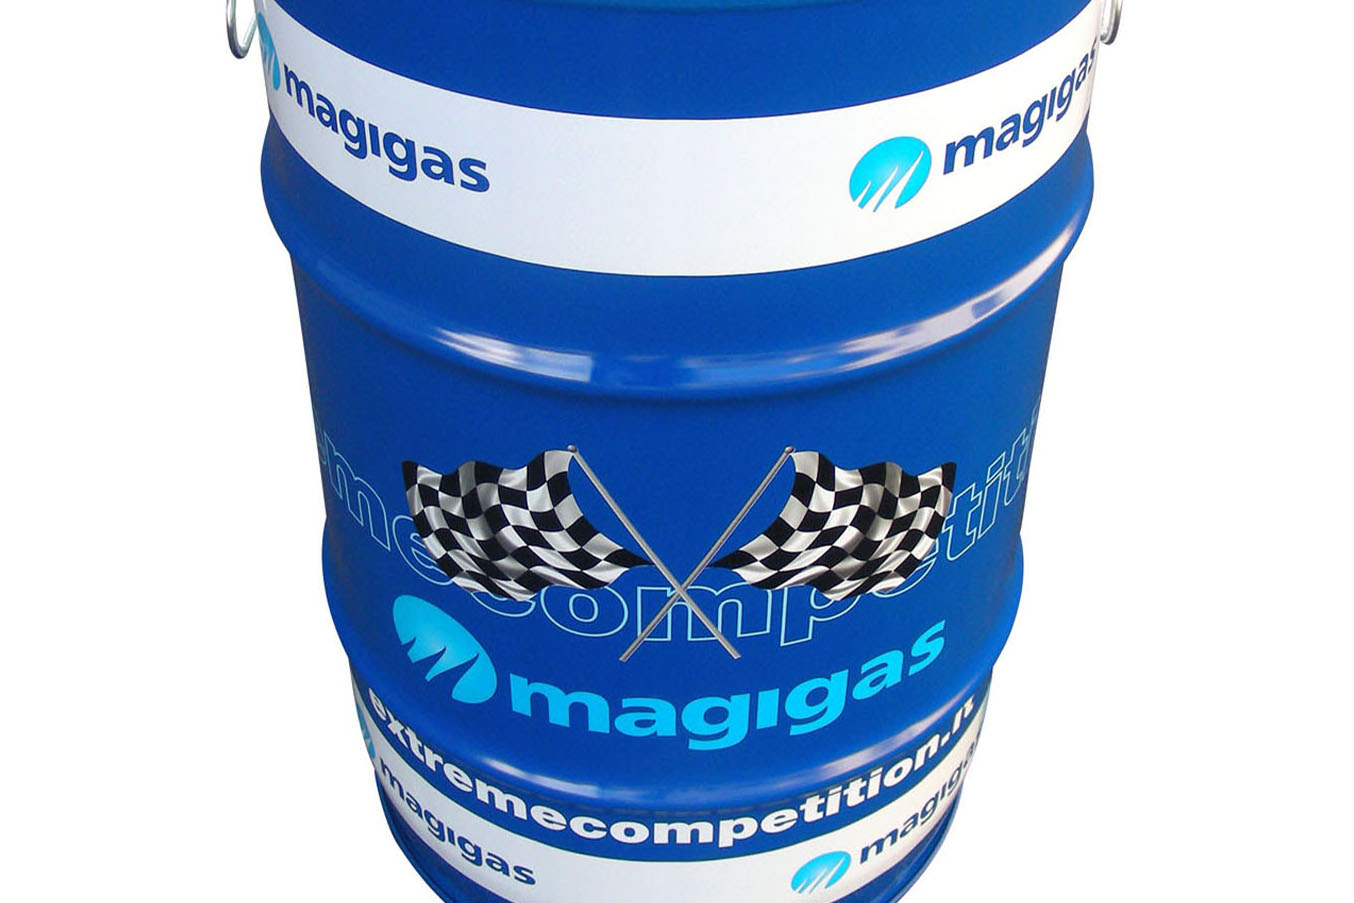 Magigas Extreme Competition